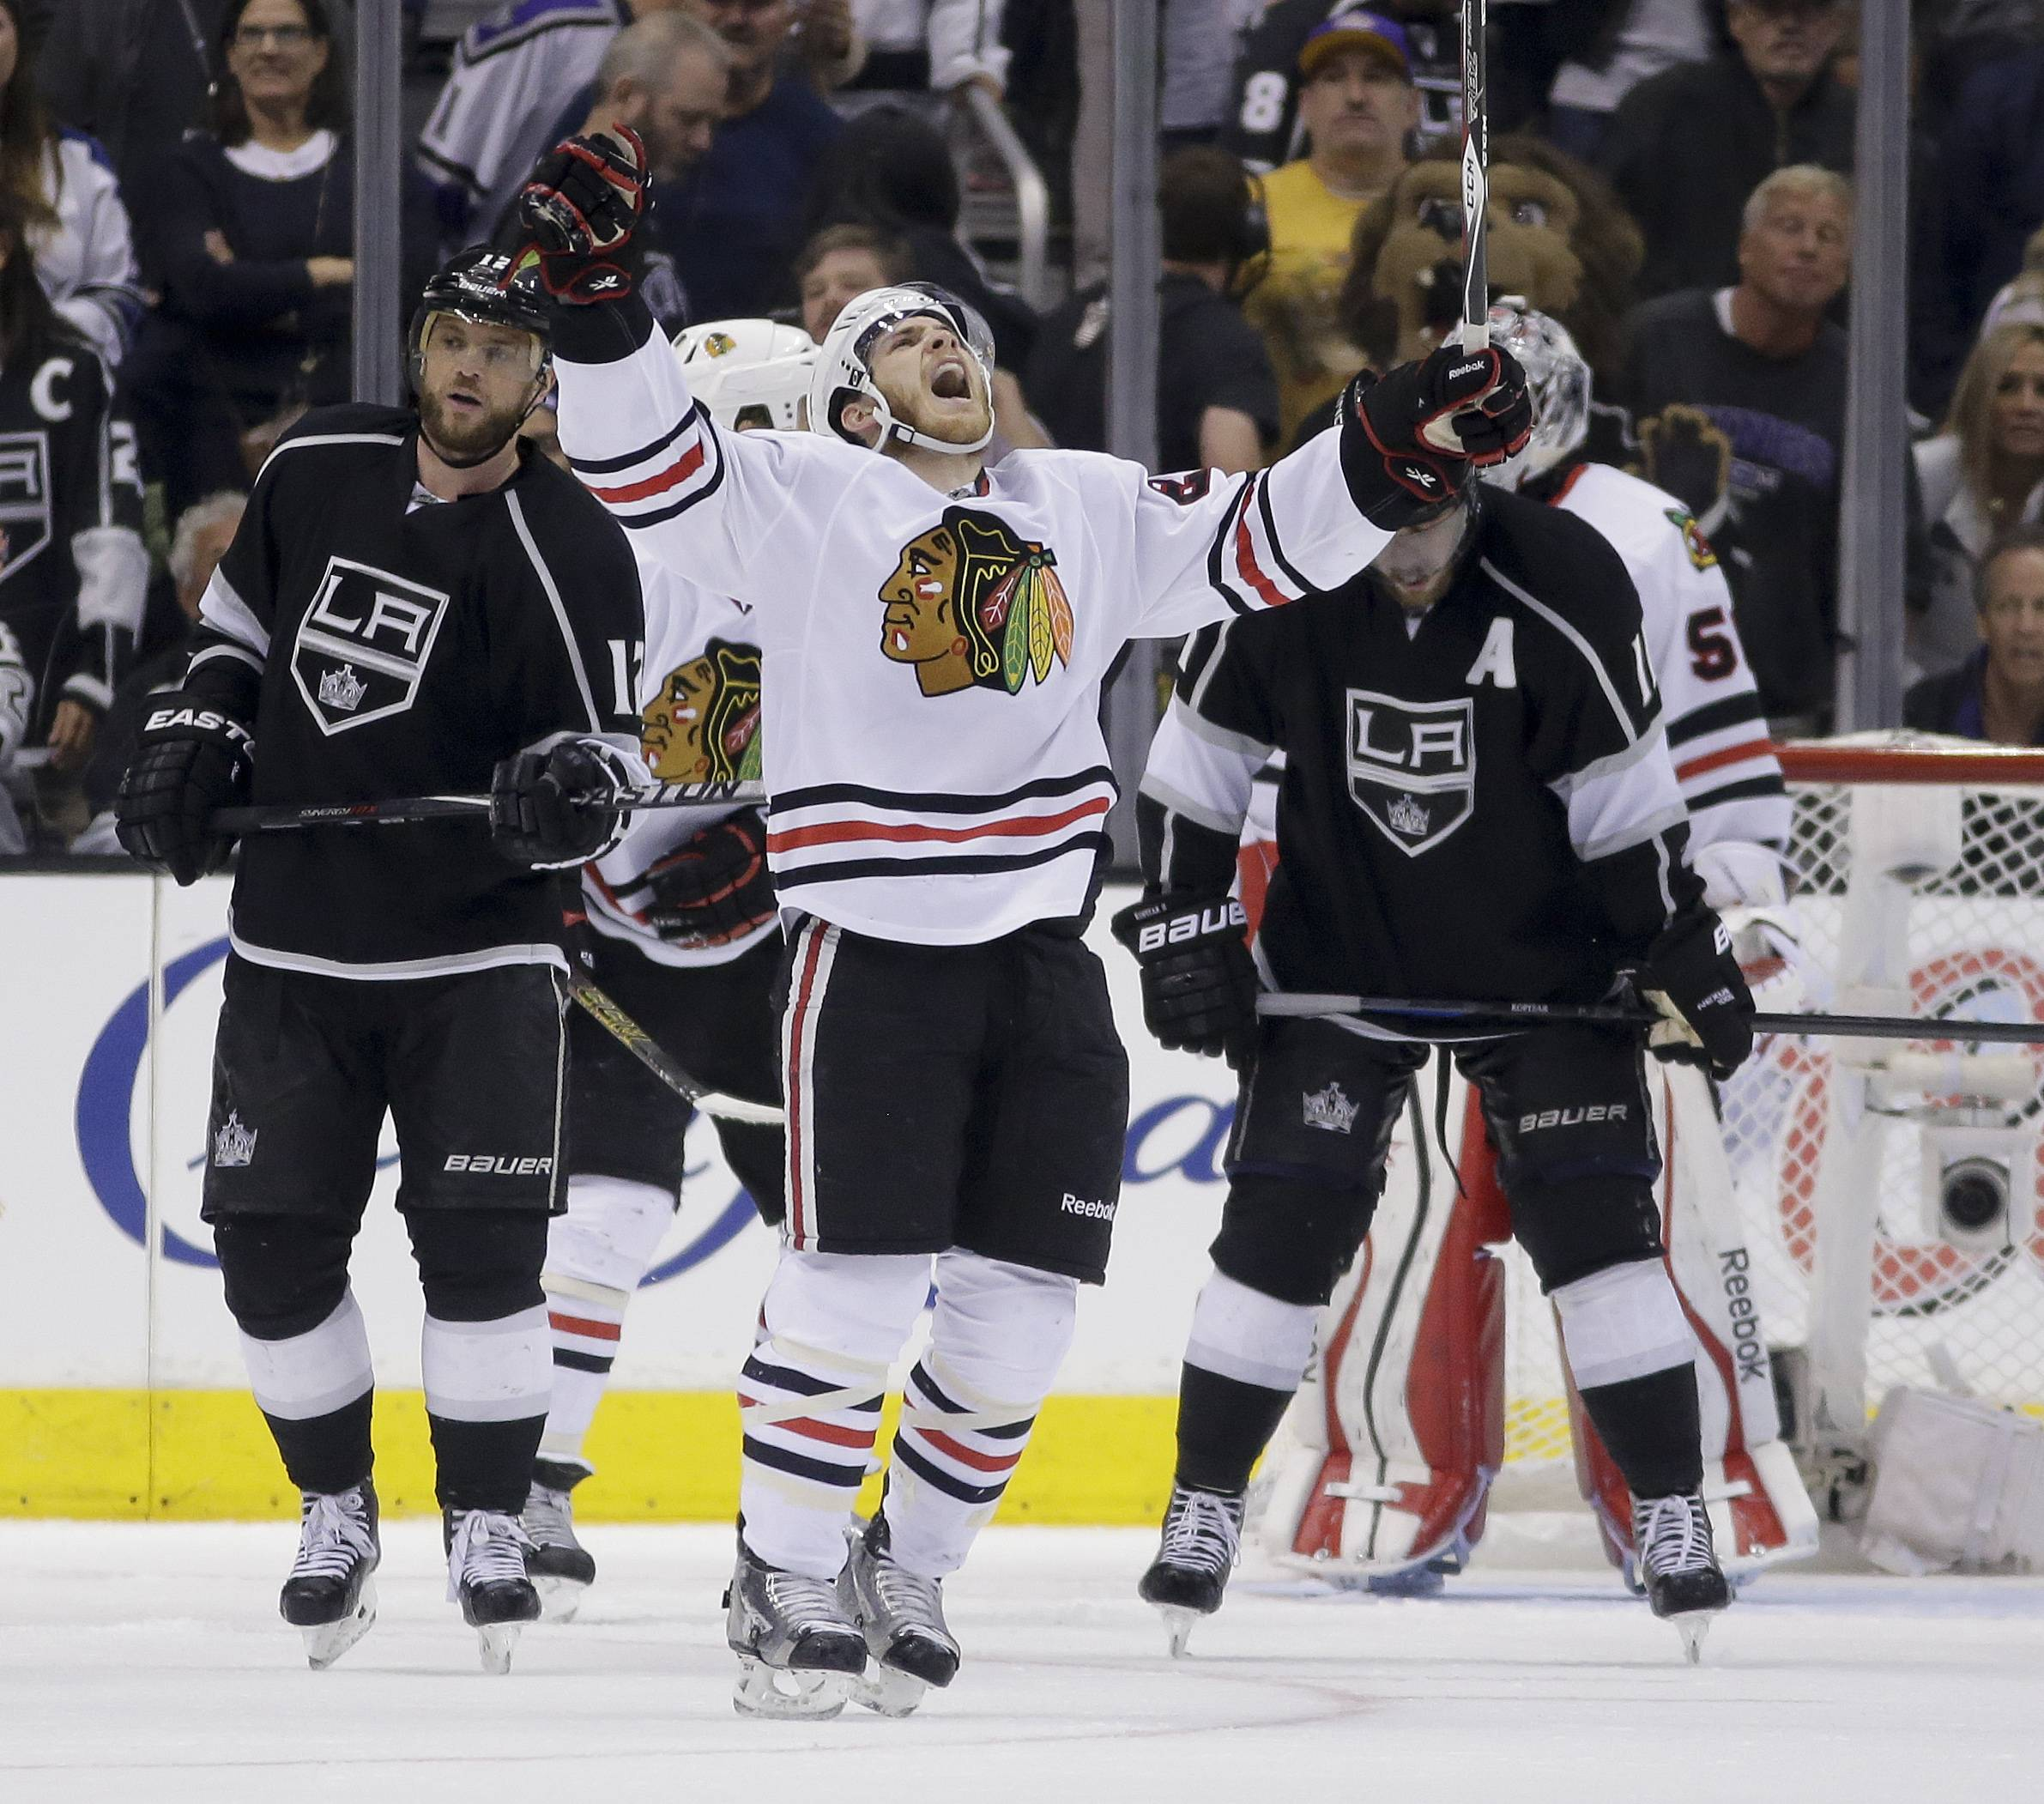 Chicago Blackhawks right wing Ben Smith, middle, celebrates as Los Angeles Kings right wing Marian Gaborik, left, and center Anze Kopitar look away after the game.